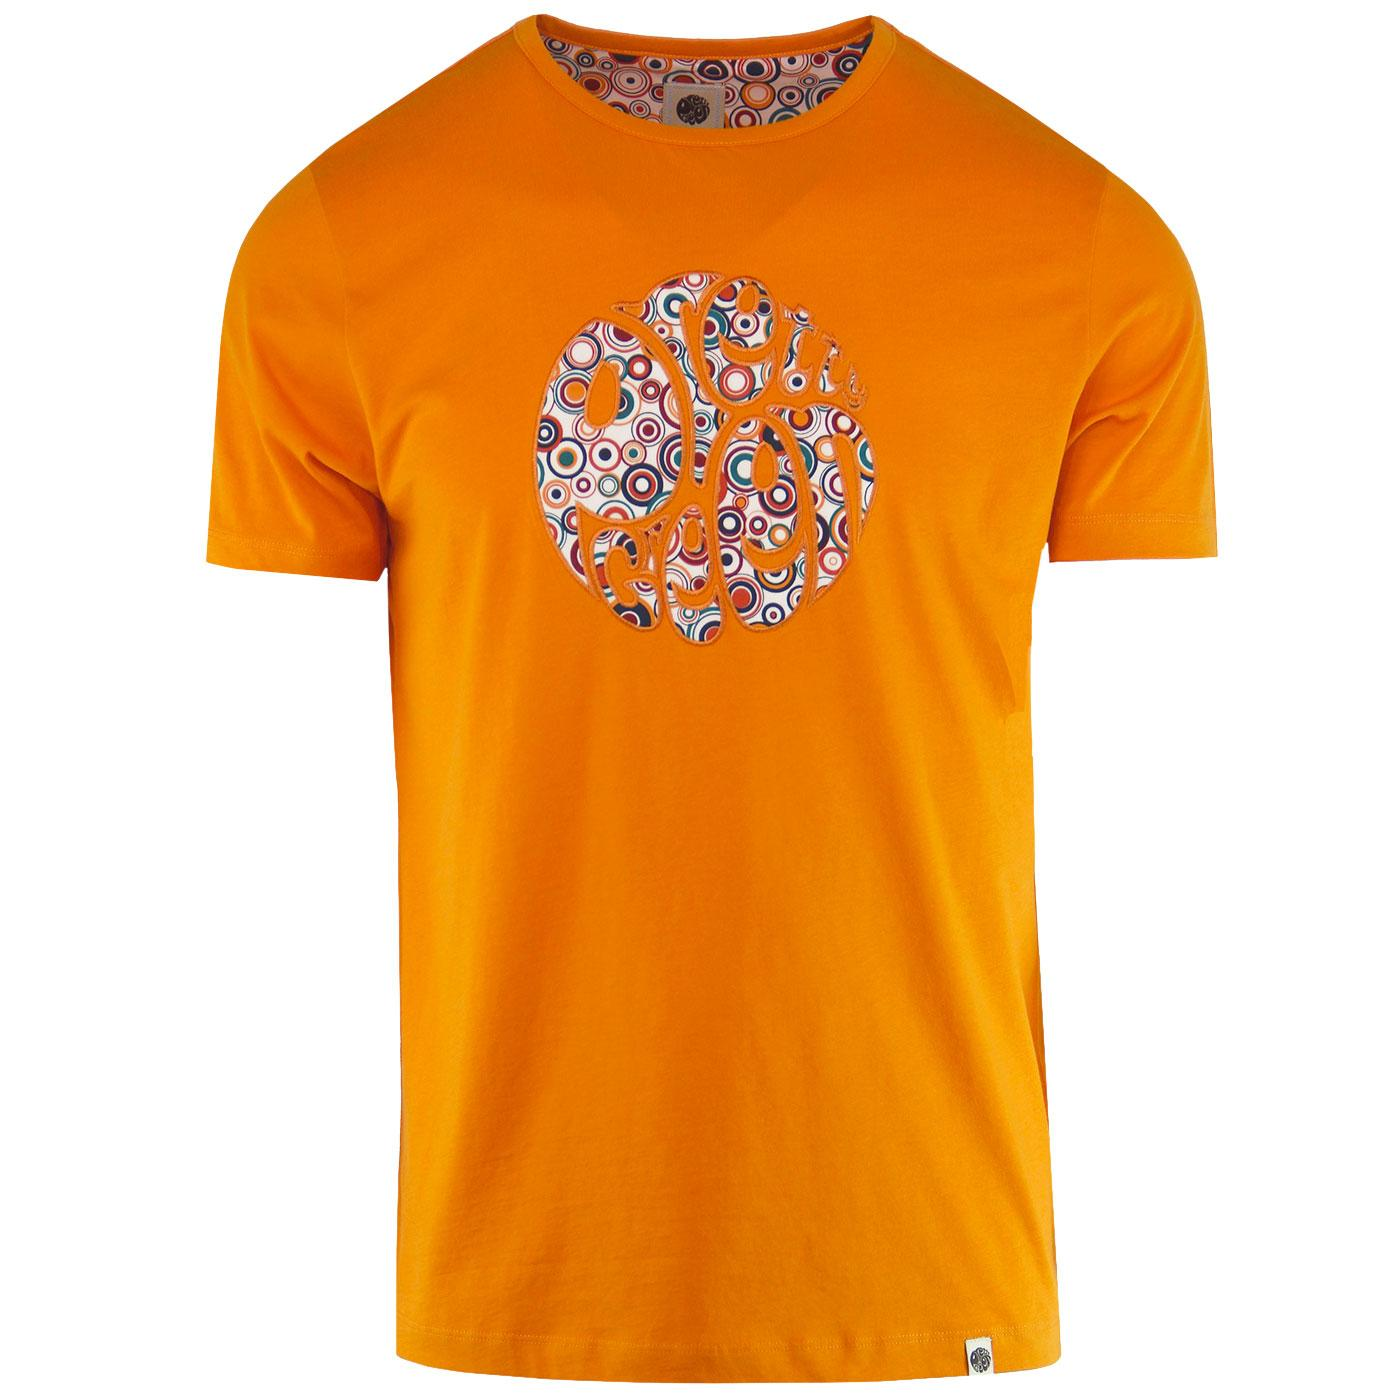 PRETTY GREEN Applique Target Logo Print Tee (O)